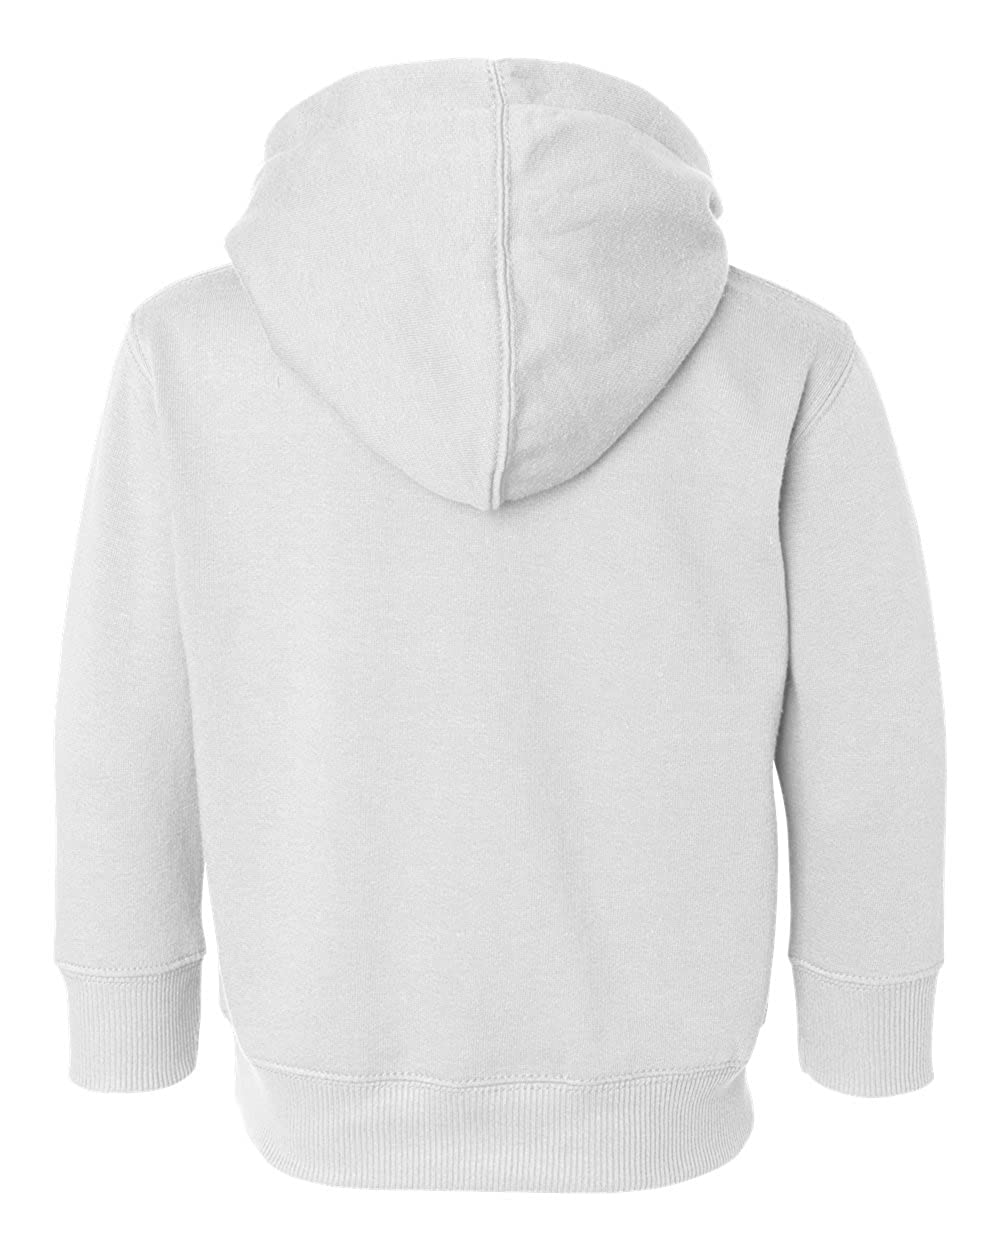 Clementine Toddler Pullover Fleece Hoodie 3326 White 5//6